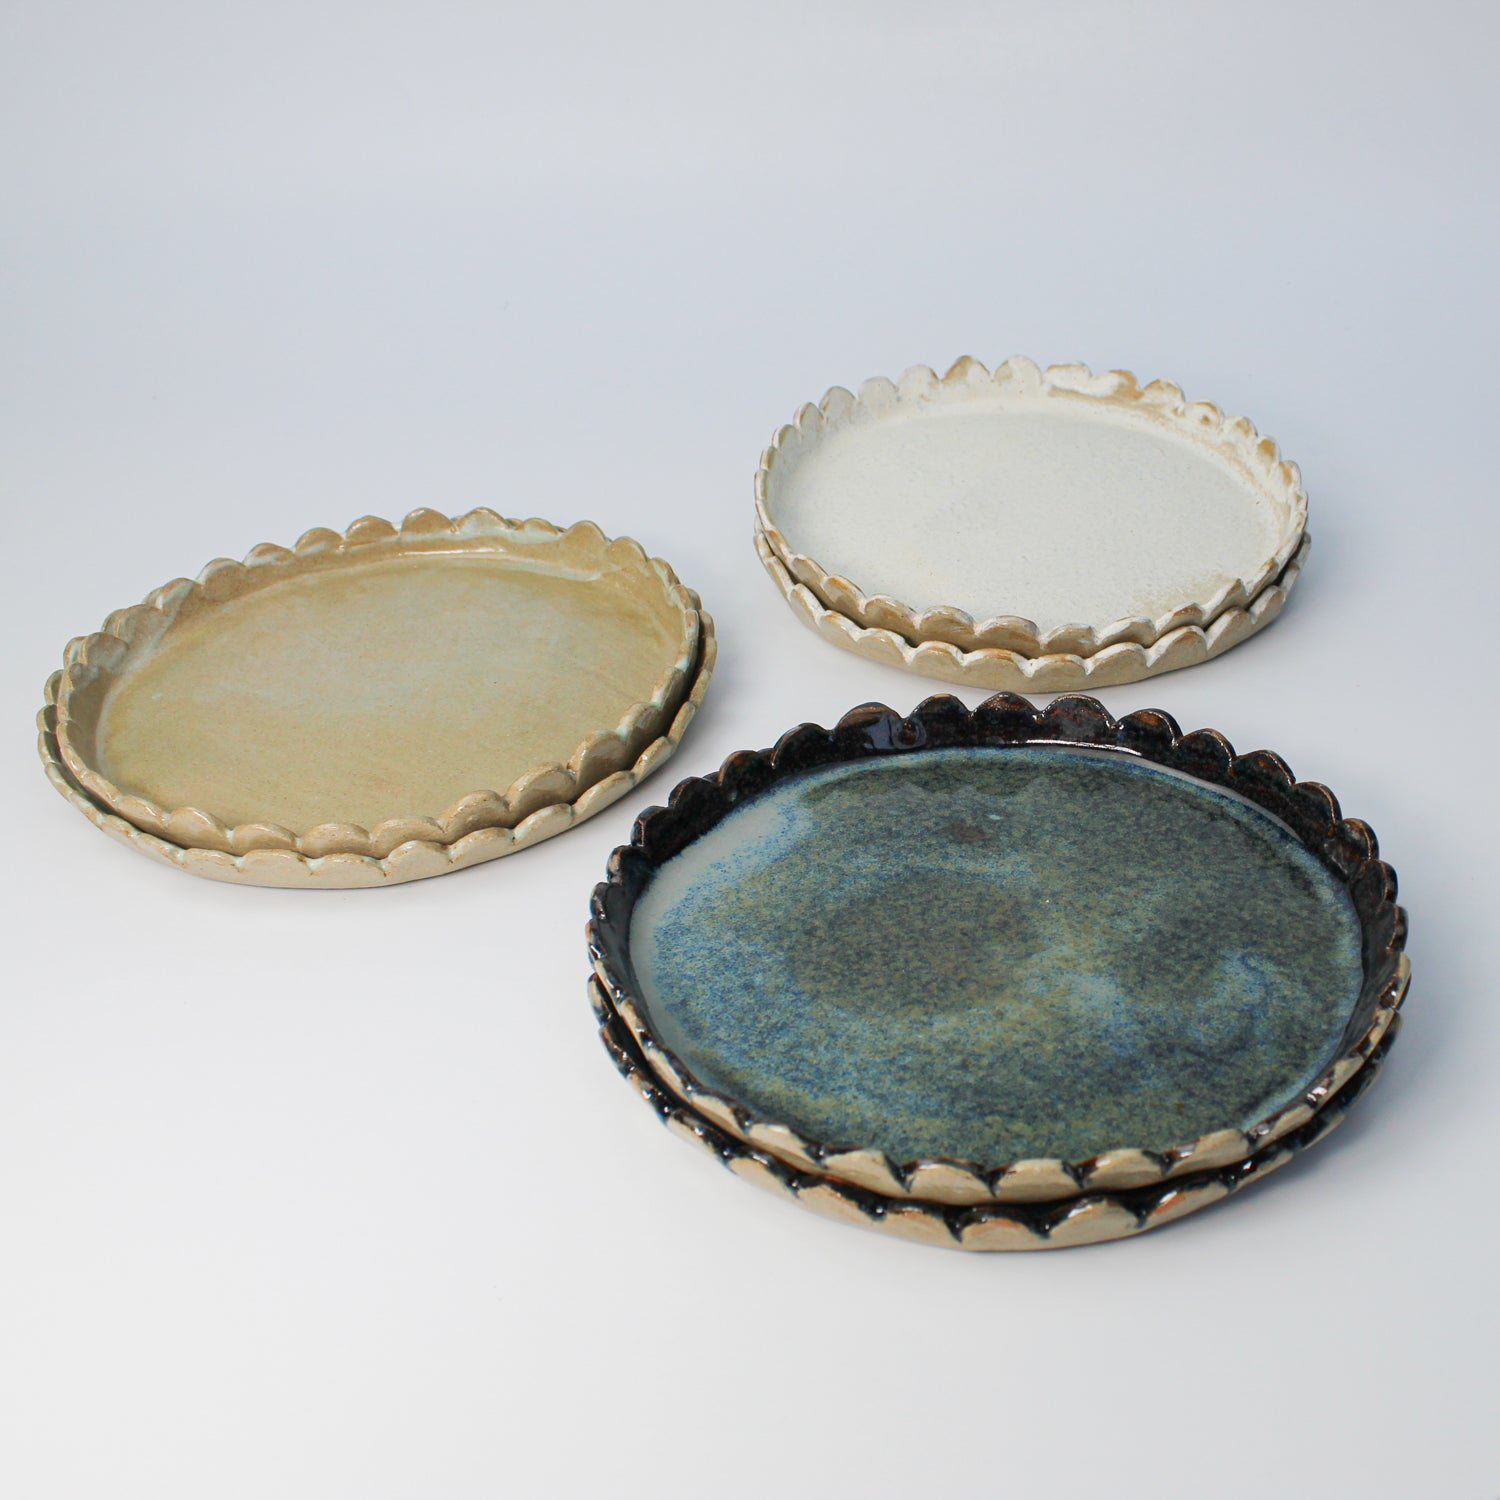 Three sets of two side plates with scalloped edges. One blue set, one white set and one sage green set.